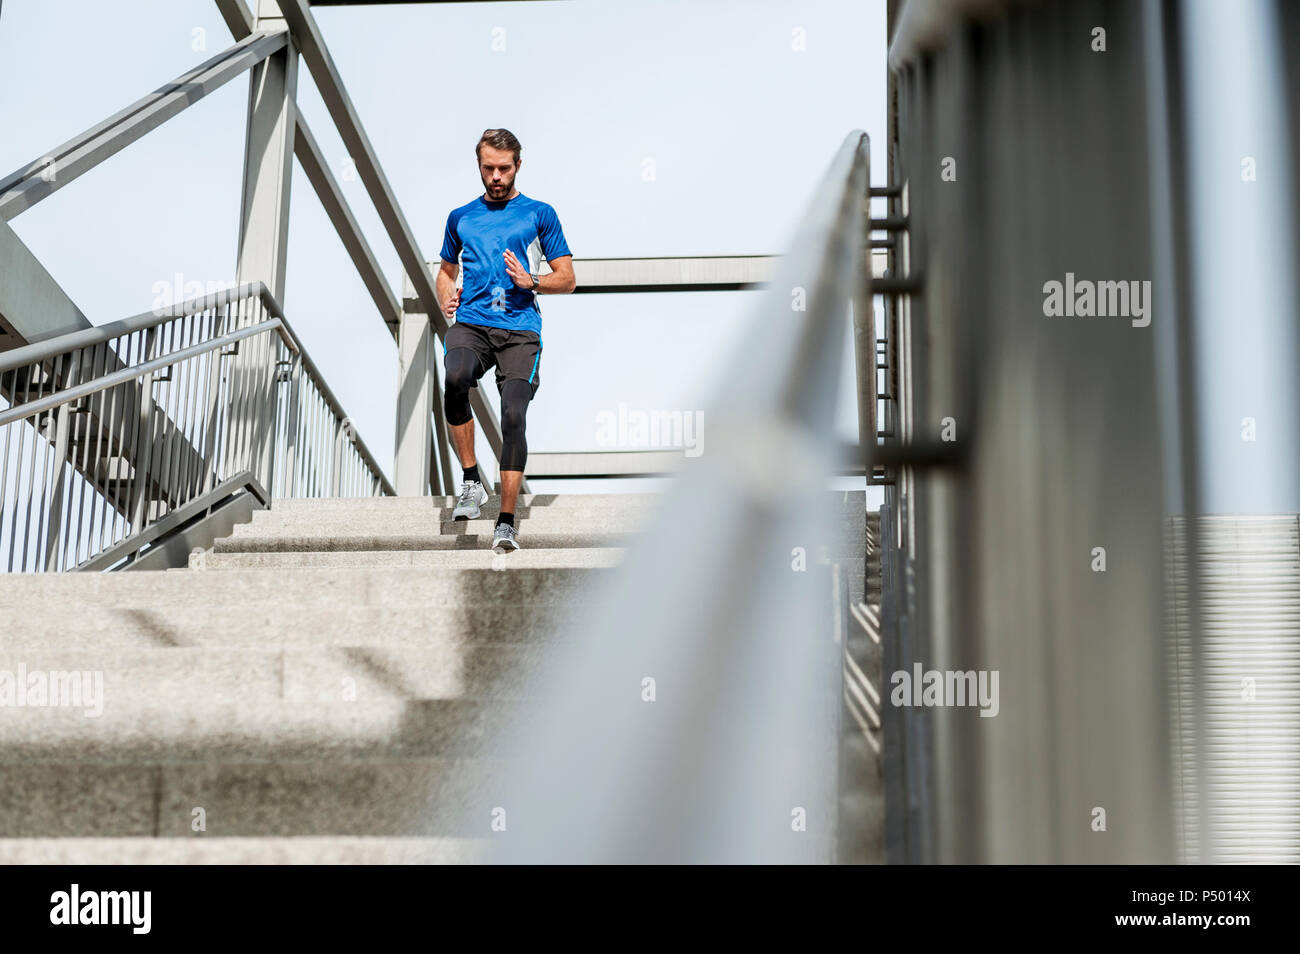 Man running down stairs - Stock Image